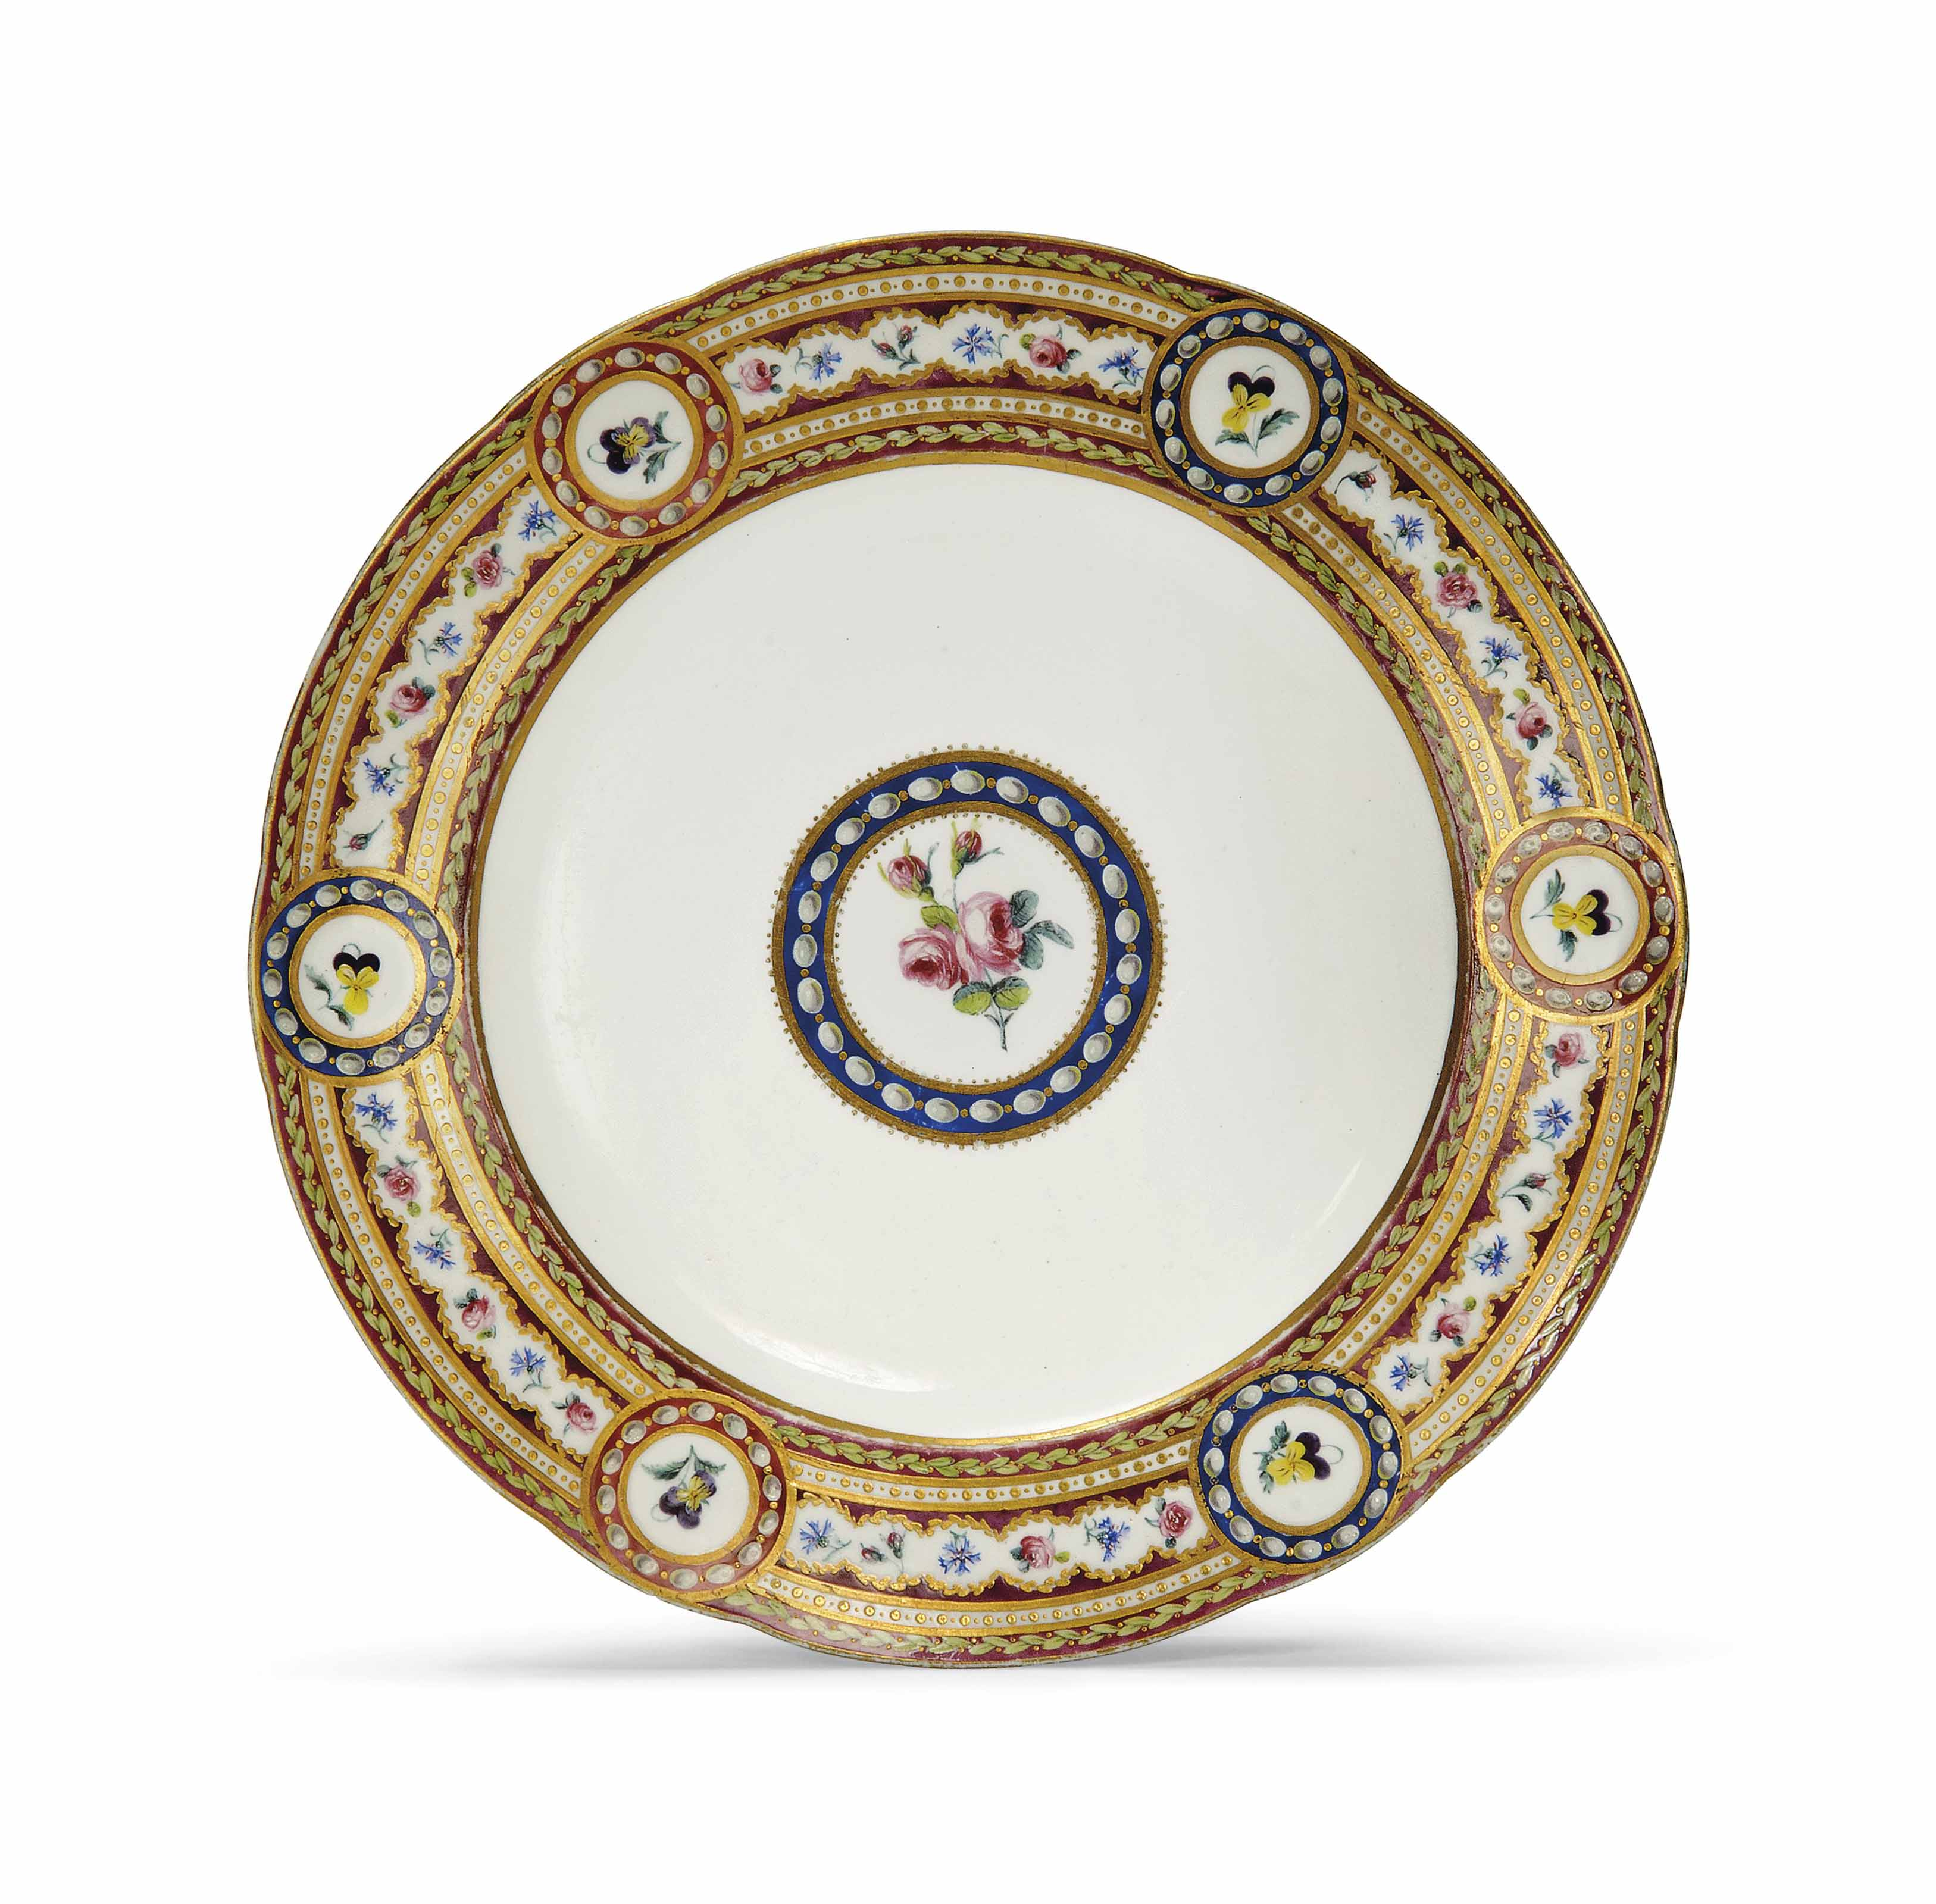 A SEVRES PLATE FROM THE 'SERVI